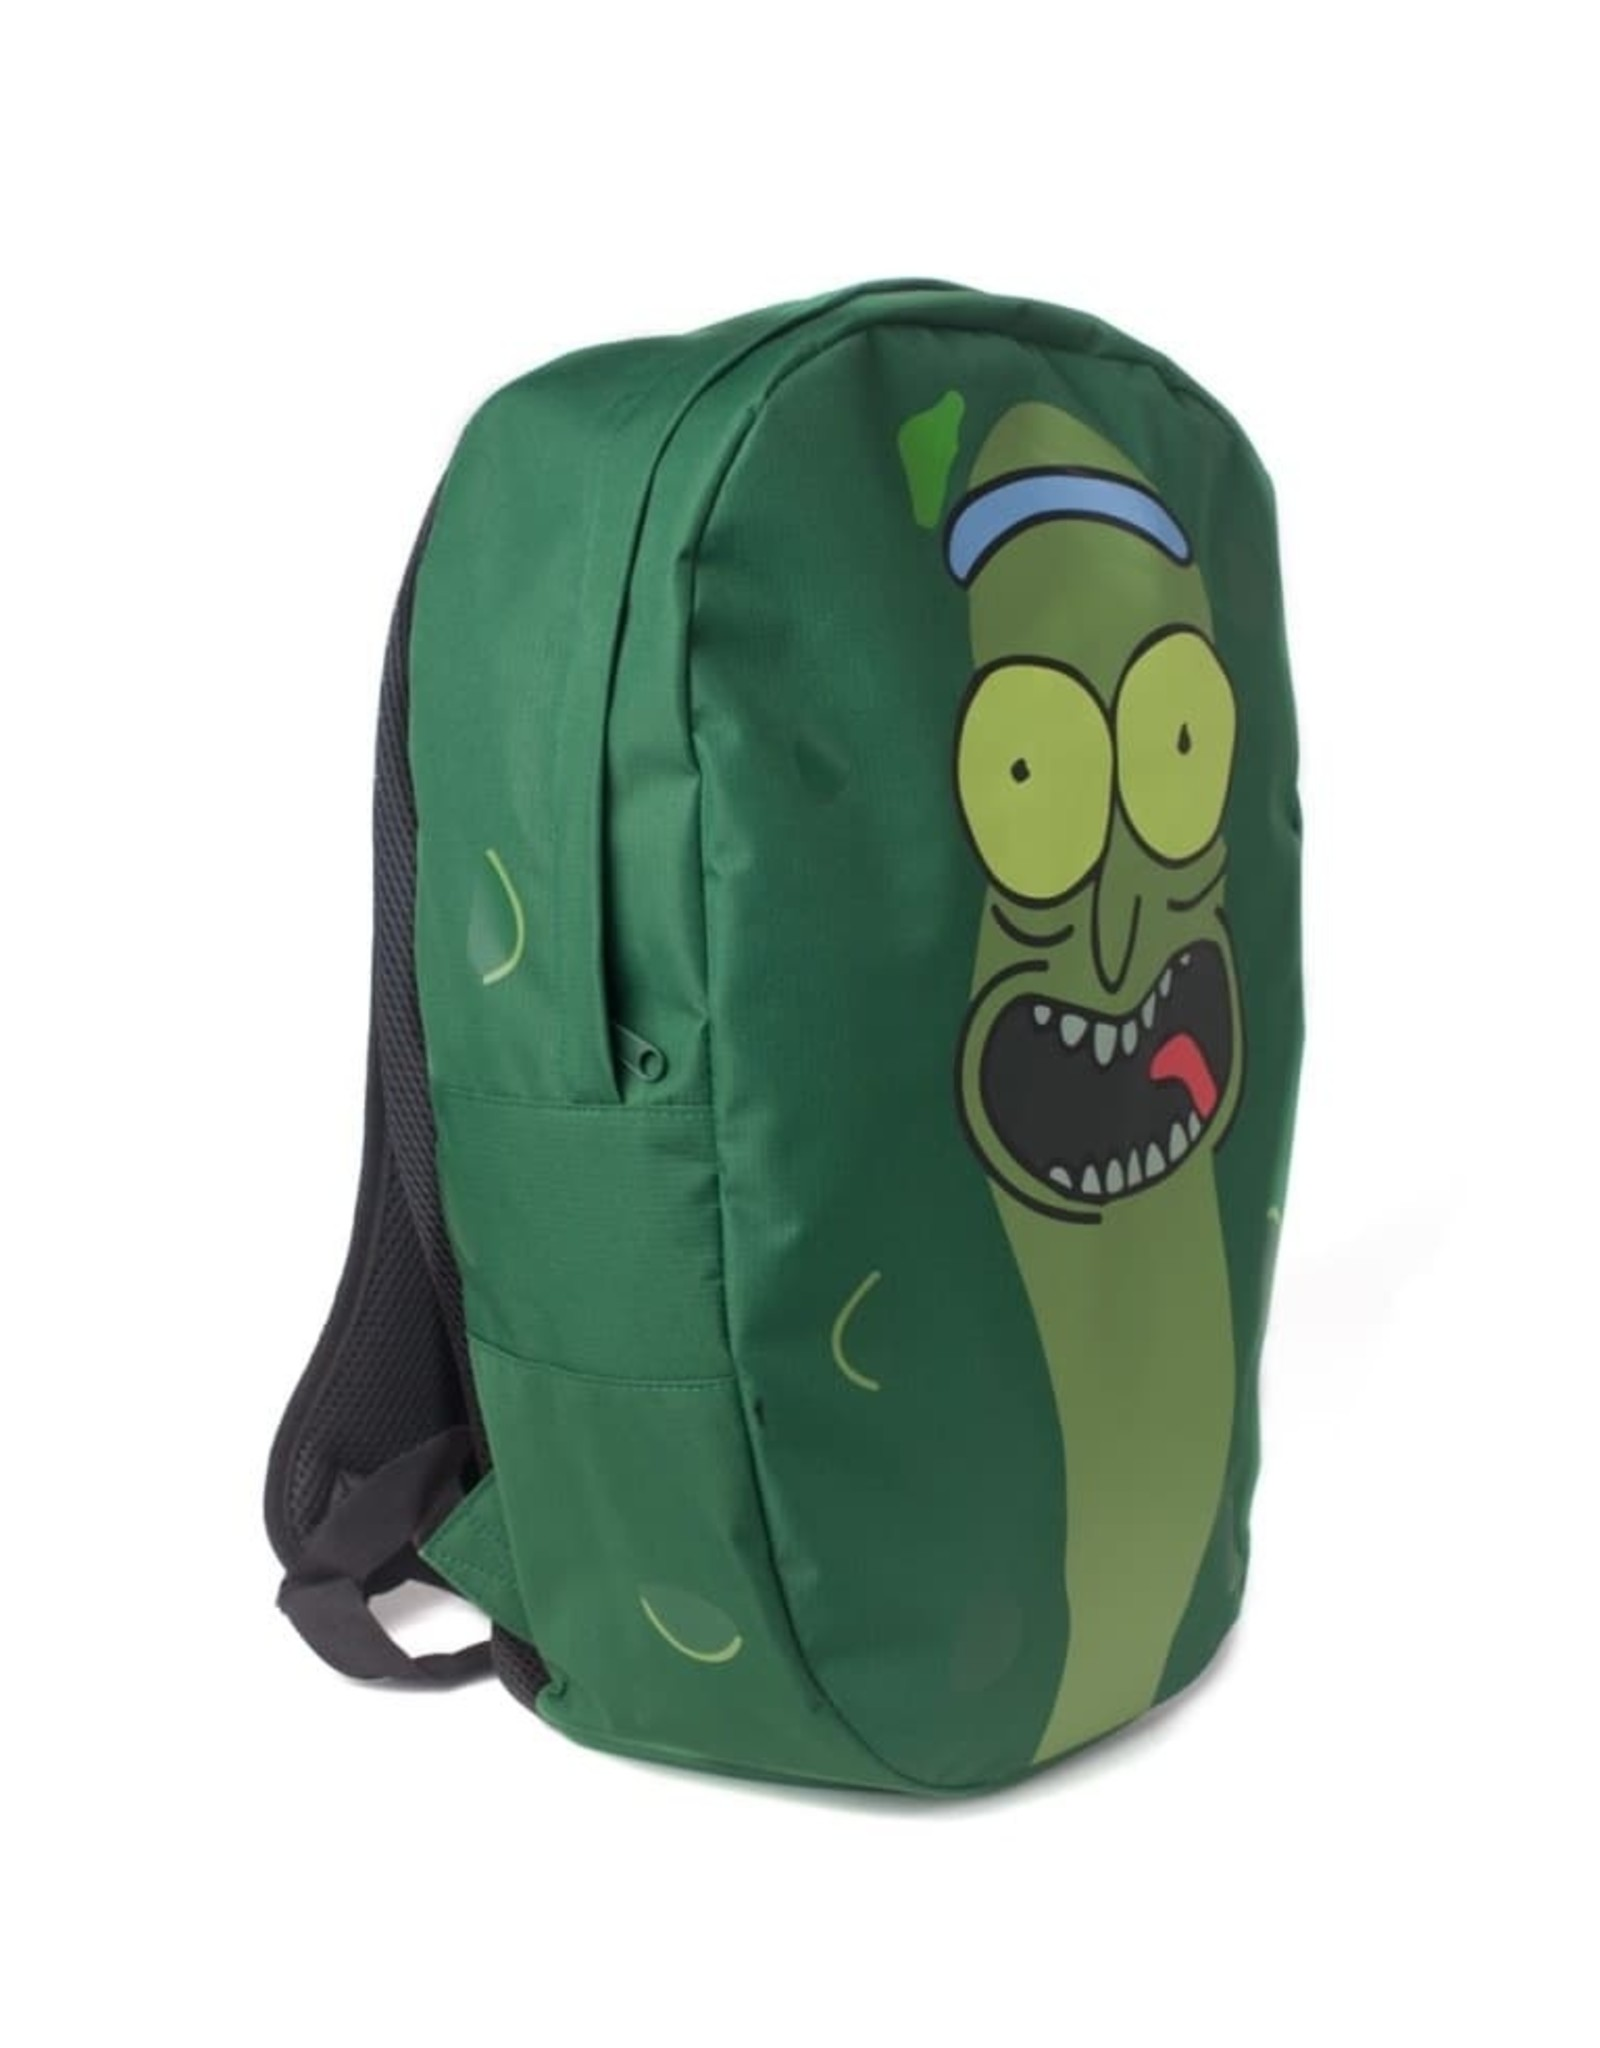 Rick and Morty Merchandise rugzakken - Rick and Morty Mr. Pickle rugzak